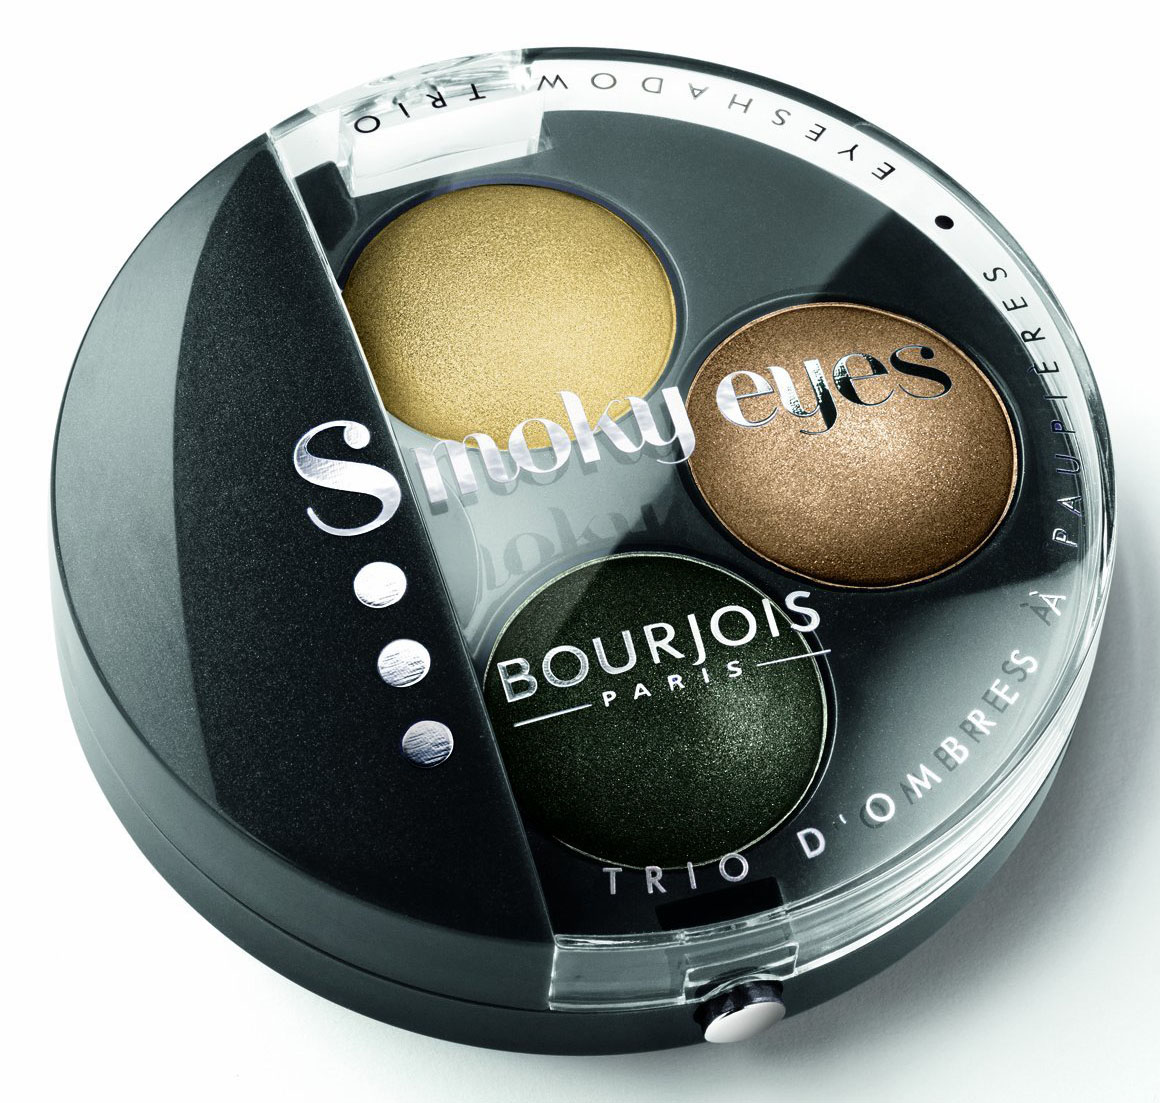 Bourjois Intense Smoky Trio-1 Eyeliner & 2 Eyeshadows Palette-02 Or Baroque